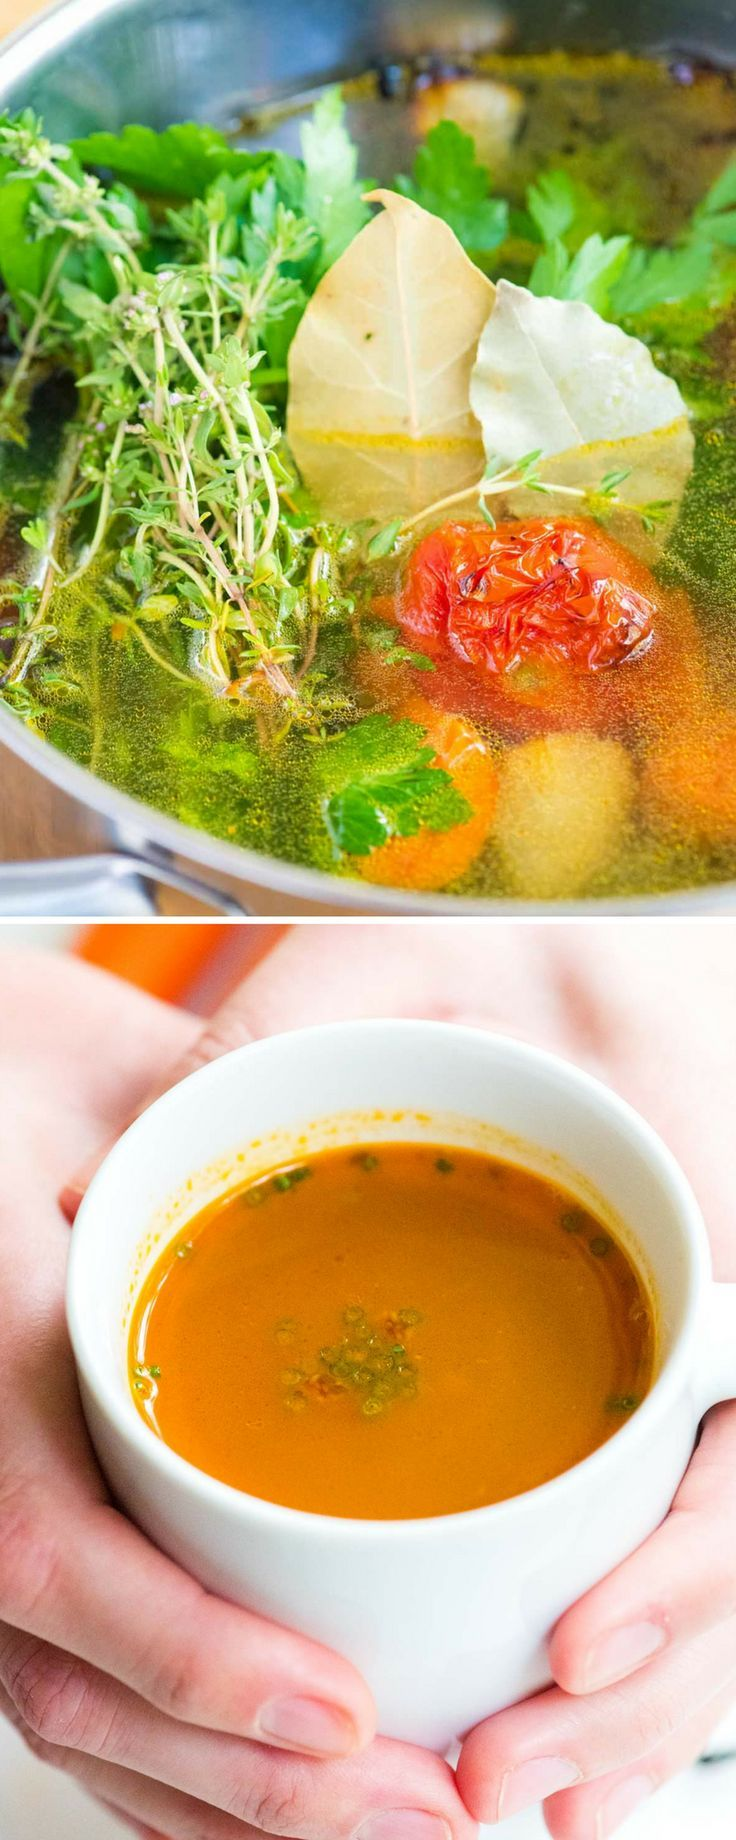 This homemade vegetable broth is hearty enough to enjoy alone as soup and works perfectly as a replacement to boxed stock in your favorite recipes. You will never want to buy the boxed broth again.